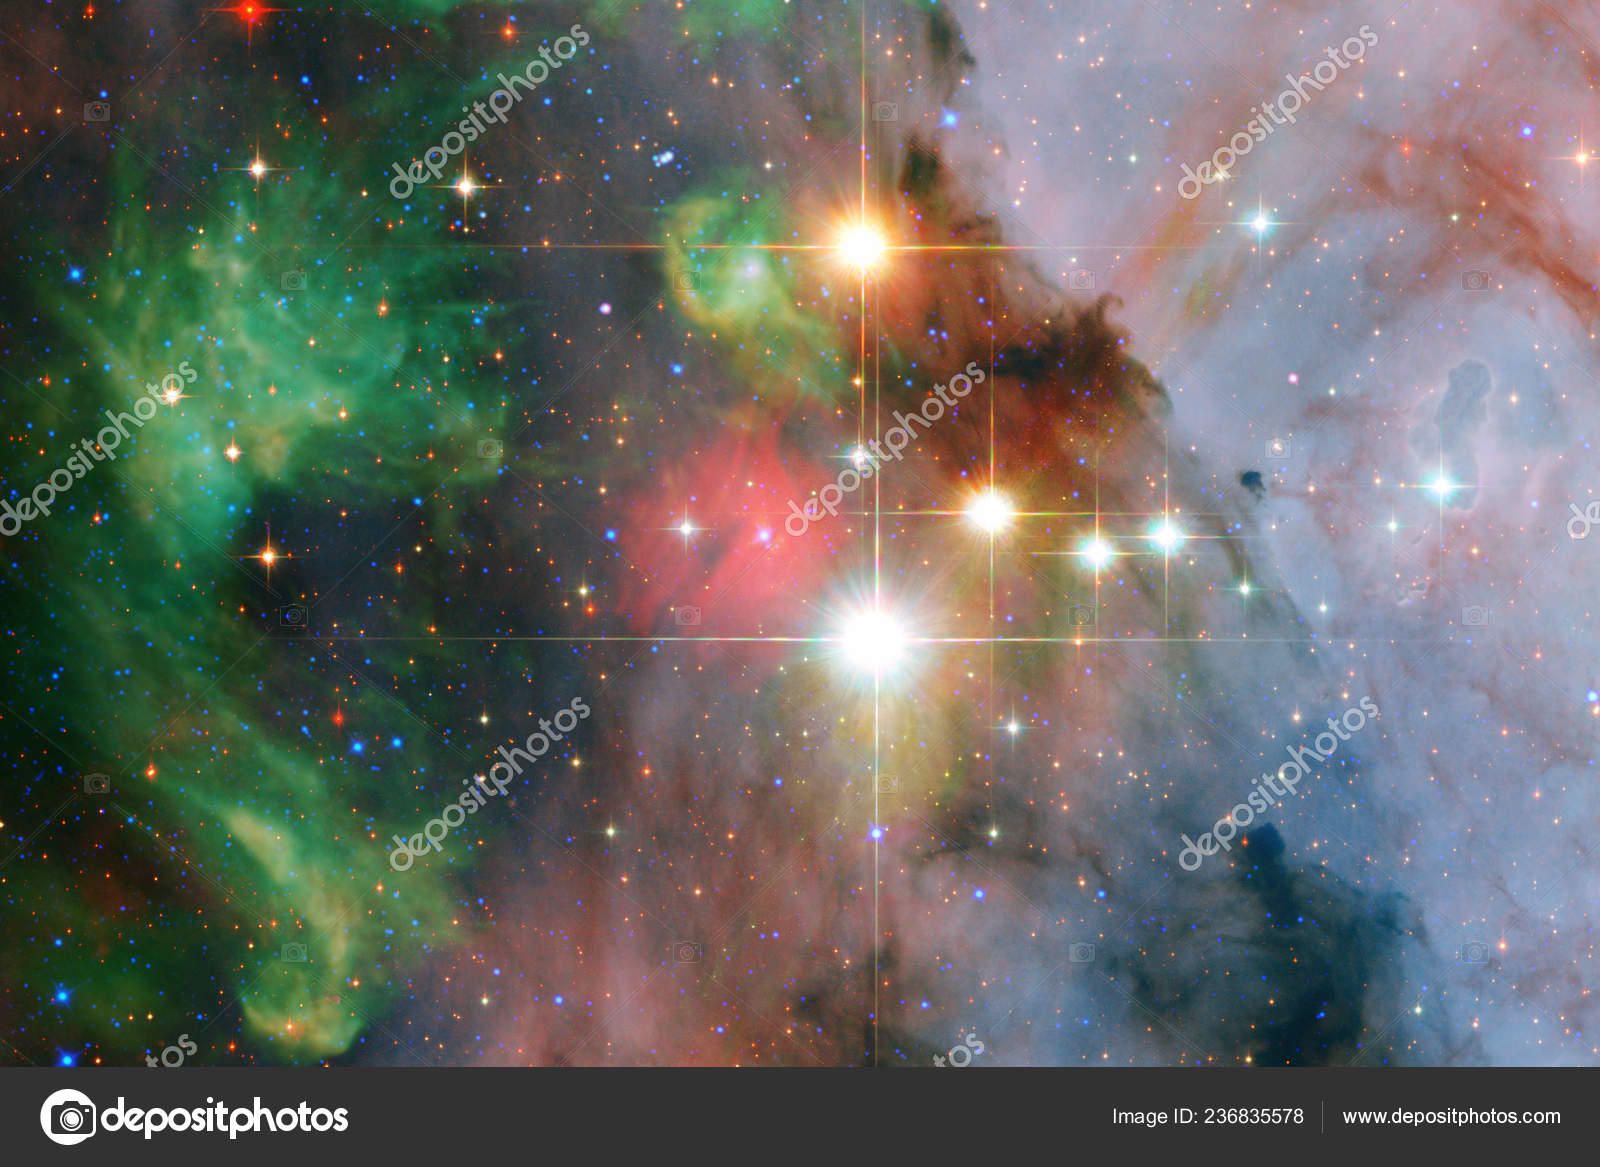 depositphotos 236835578 stock photo incredibly beautiful galaxy somewhere deep